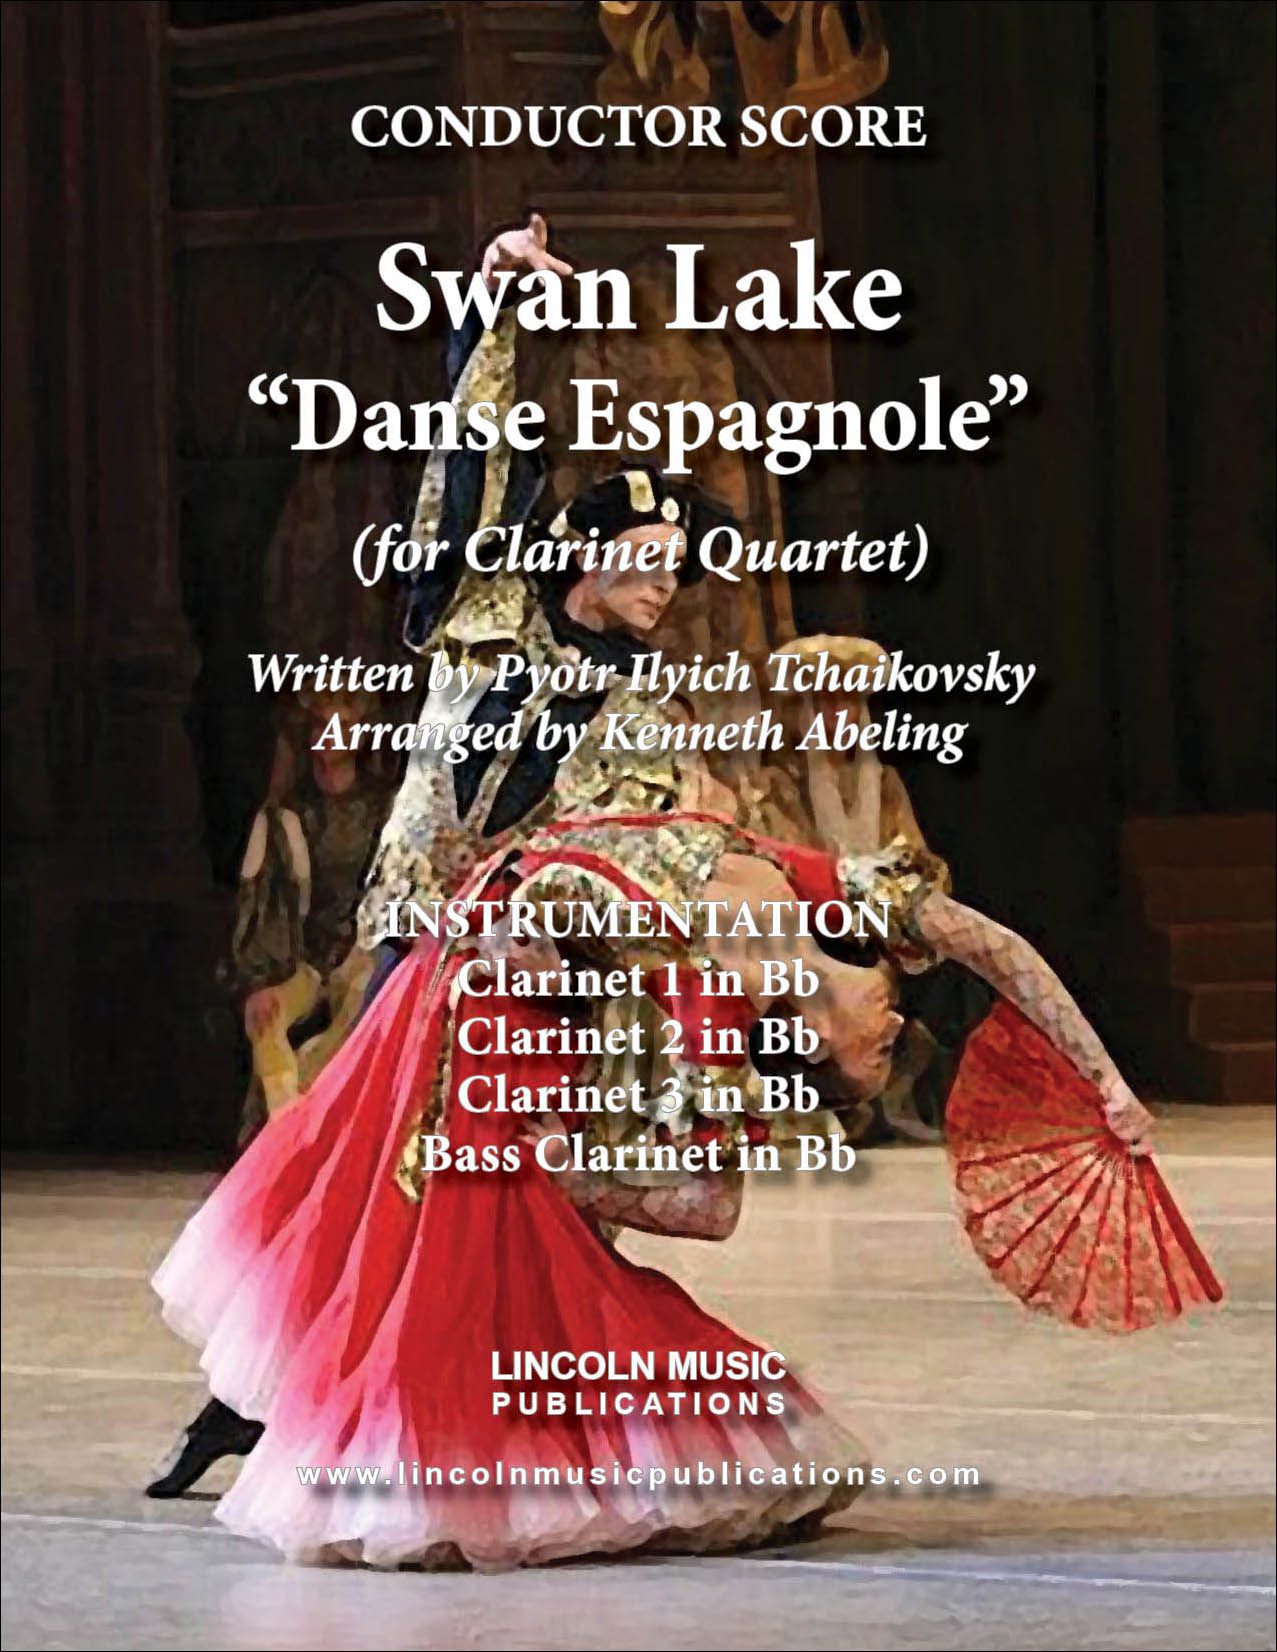 Danse Espagnole from Swan Lake